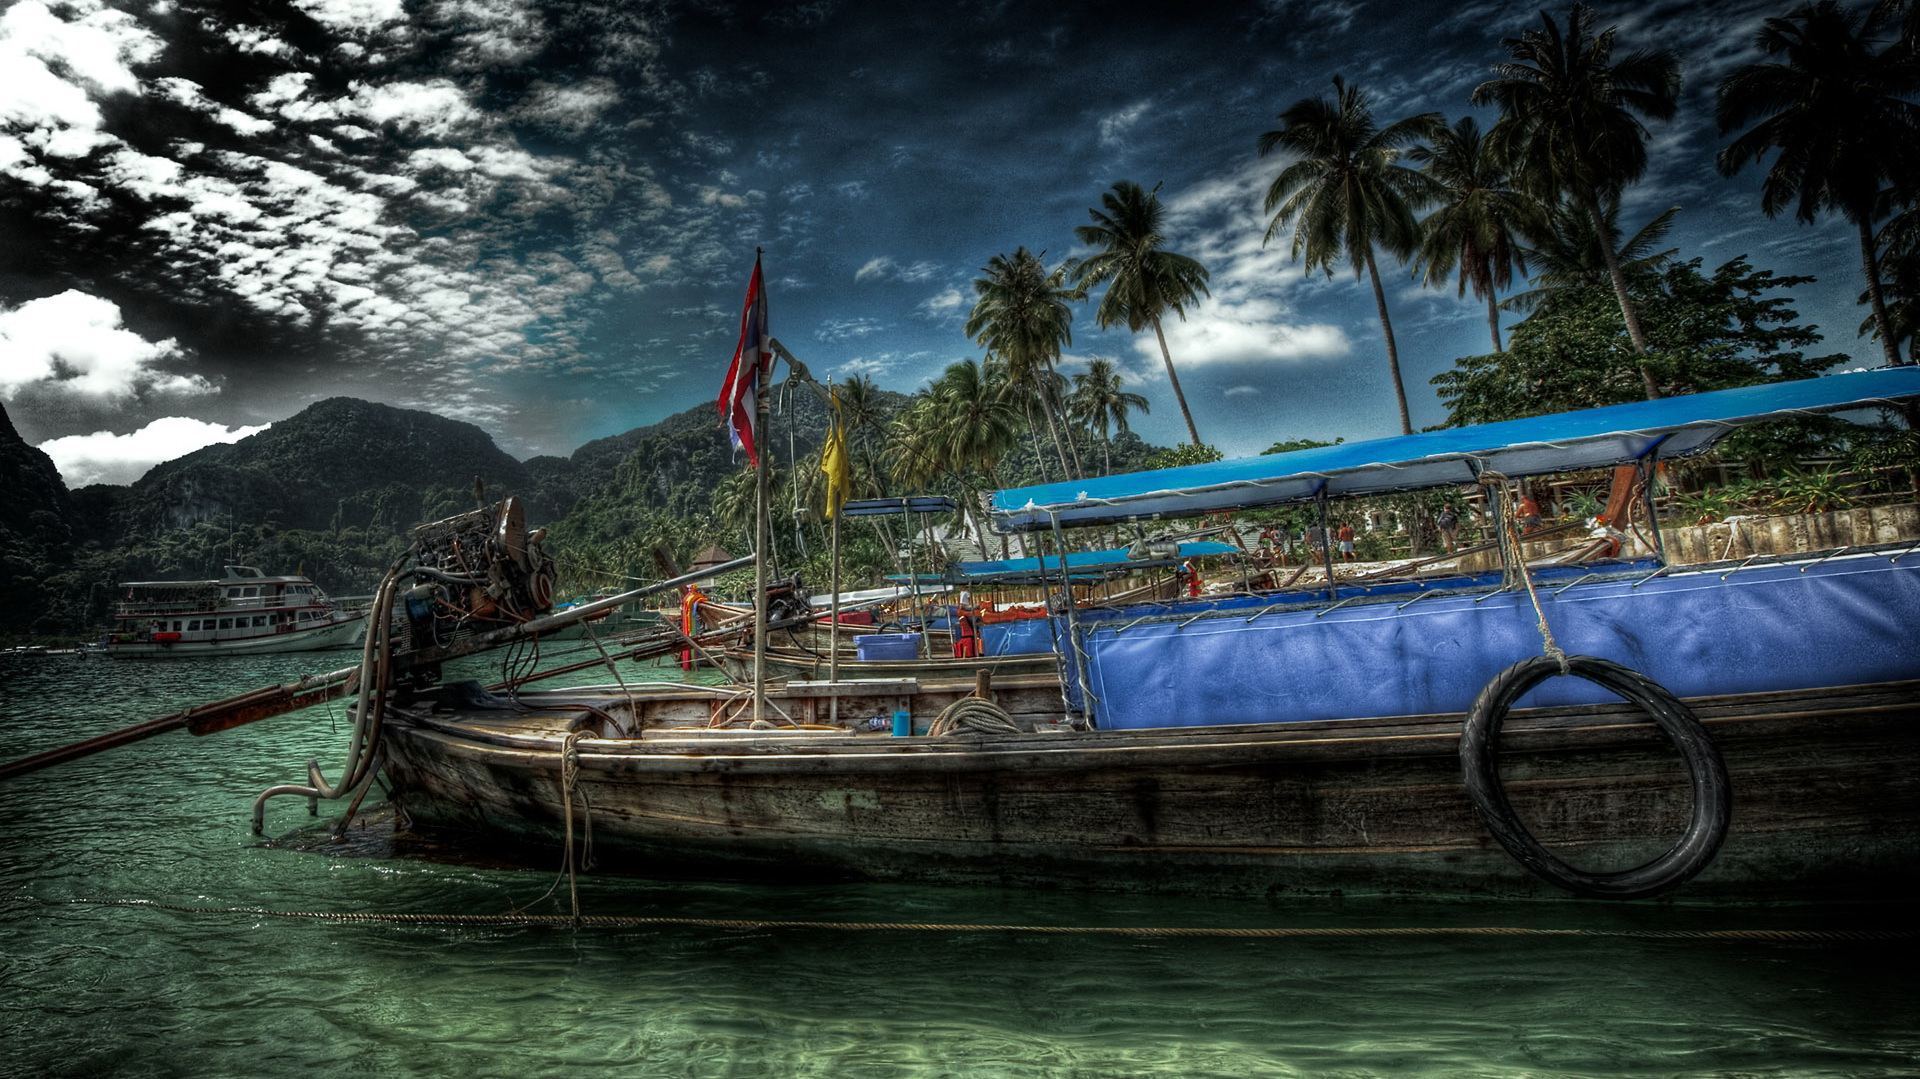 click to free download the wallpaper--Beautiful Beach Scene - Coconut Trees All Over the Beach, an Old Boat on the Clear River, the Dark Sky 1920X1080 free wallpaper download